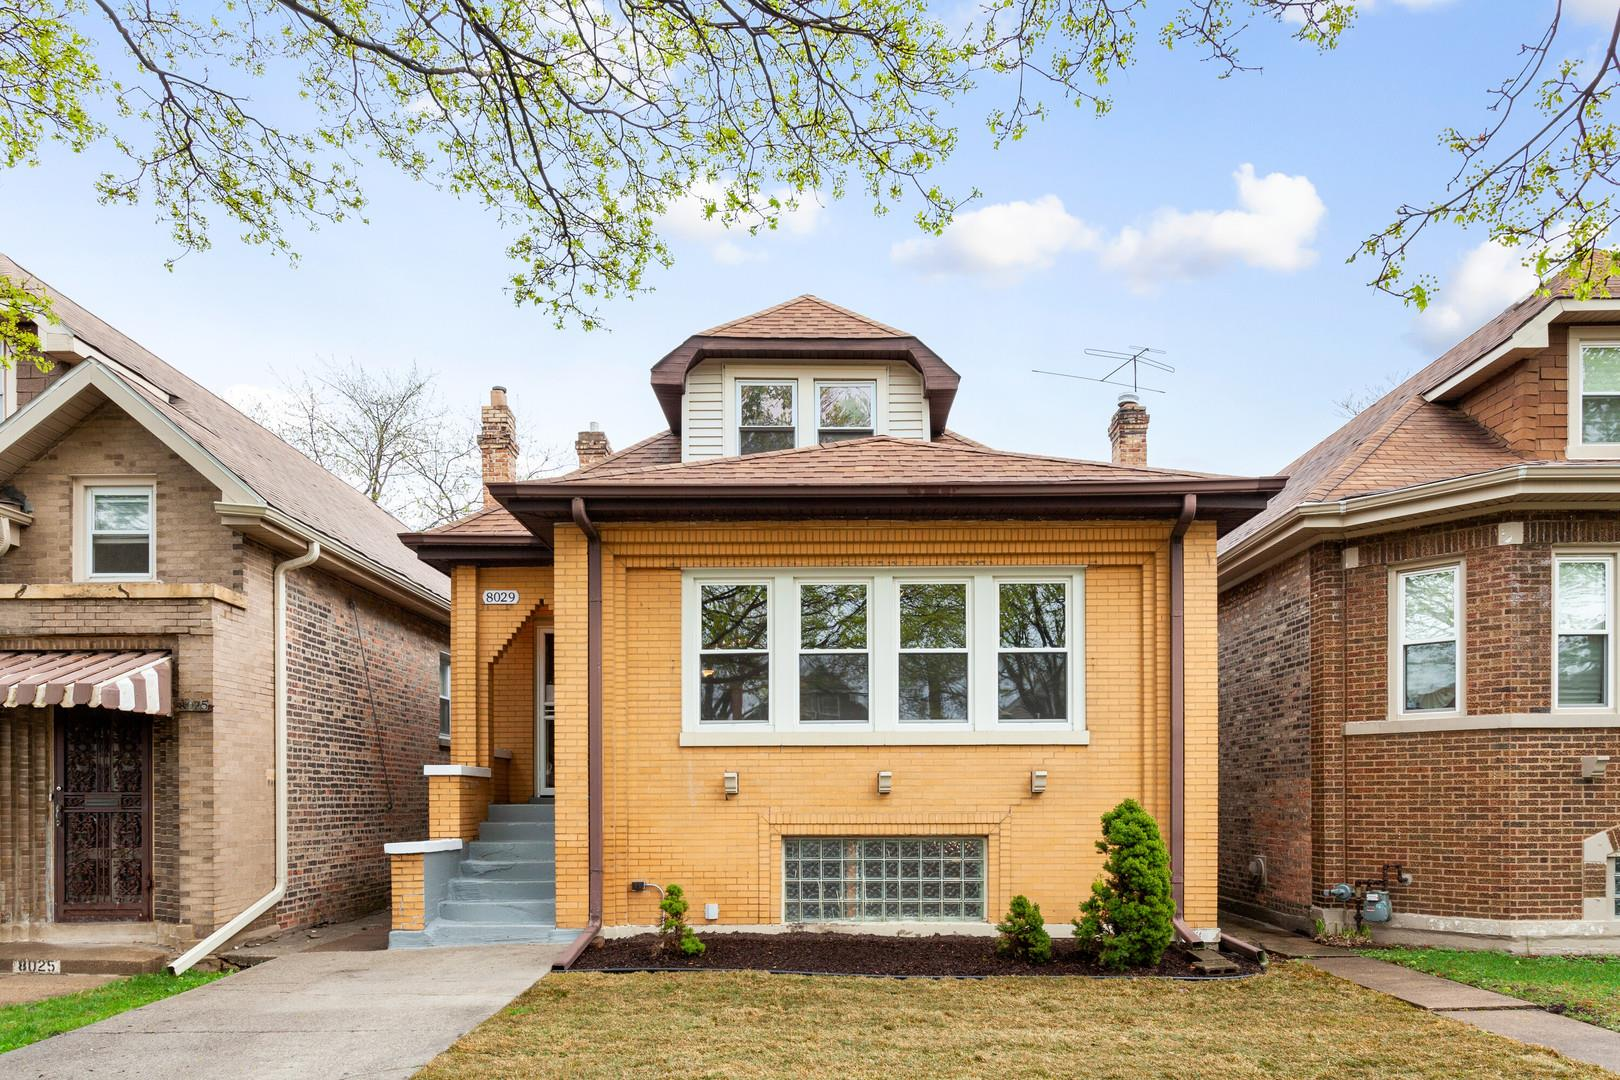 8029 S Yale Avenue, Chicago, IL 60620 - #: 11049195